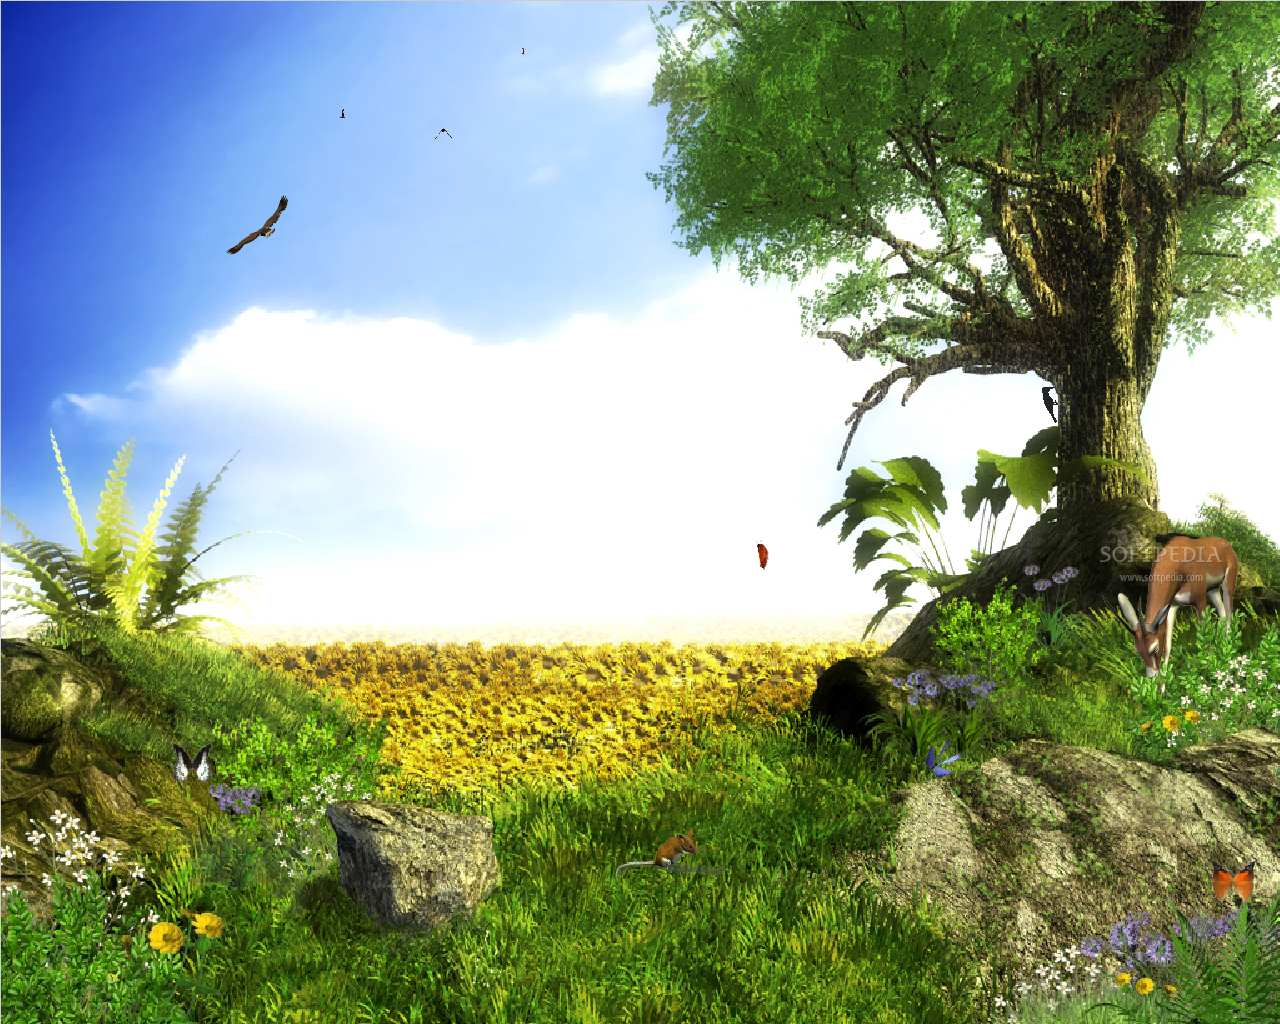 New wallpaper 2012 animated desktop wallpapers - Free 3d animation wallpaper for pc ...